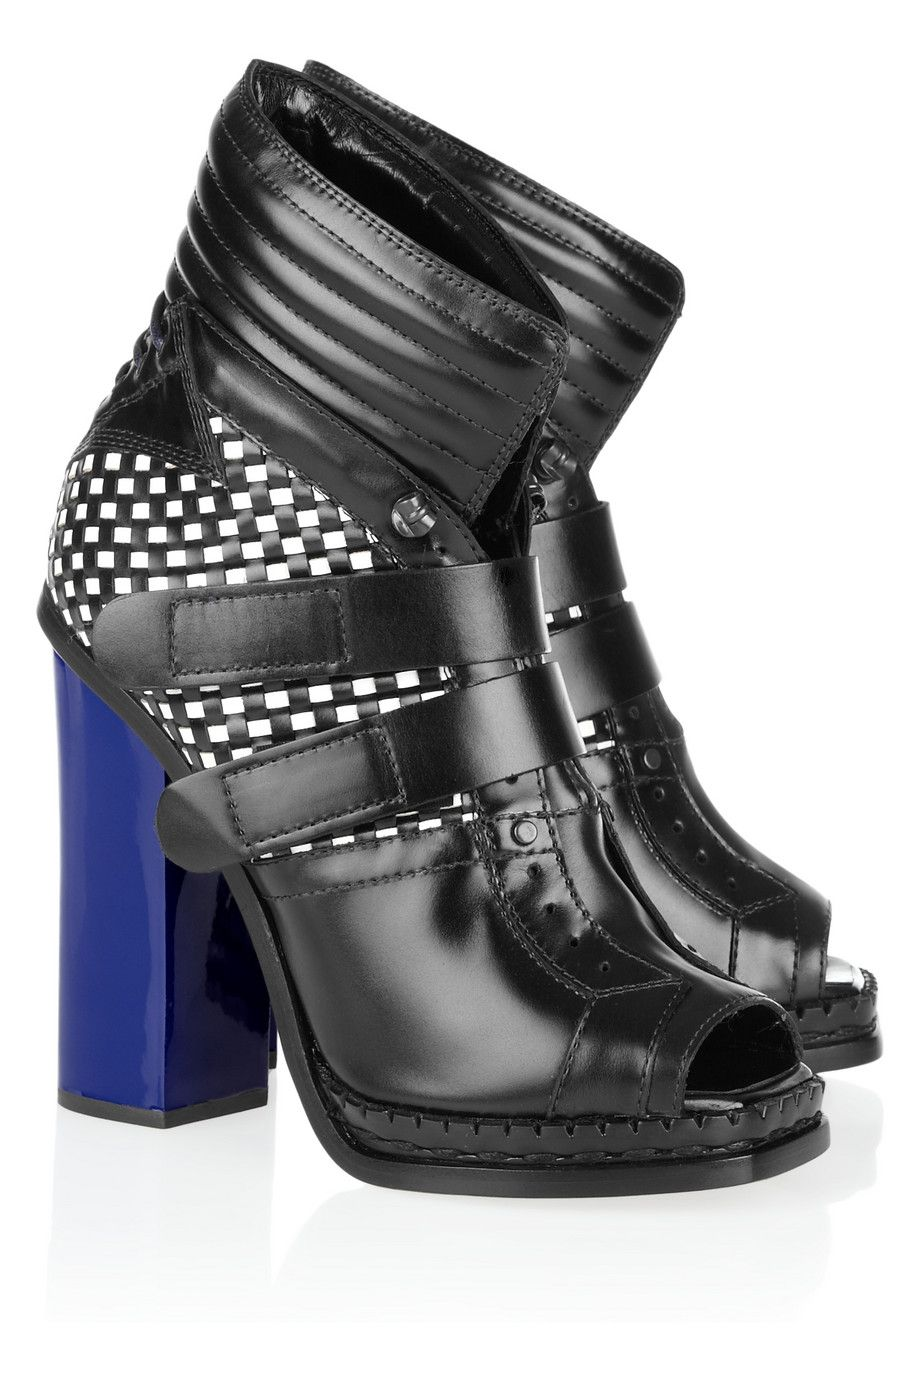 Proenza Schouler Designer Shoes, Patent Leather Boots